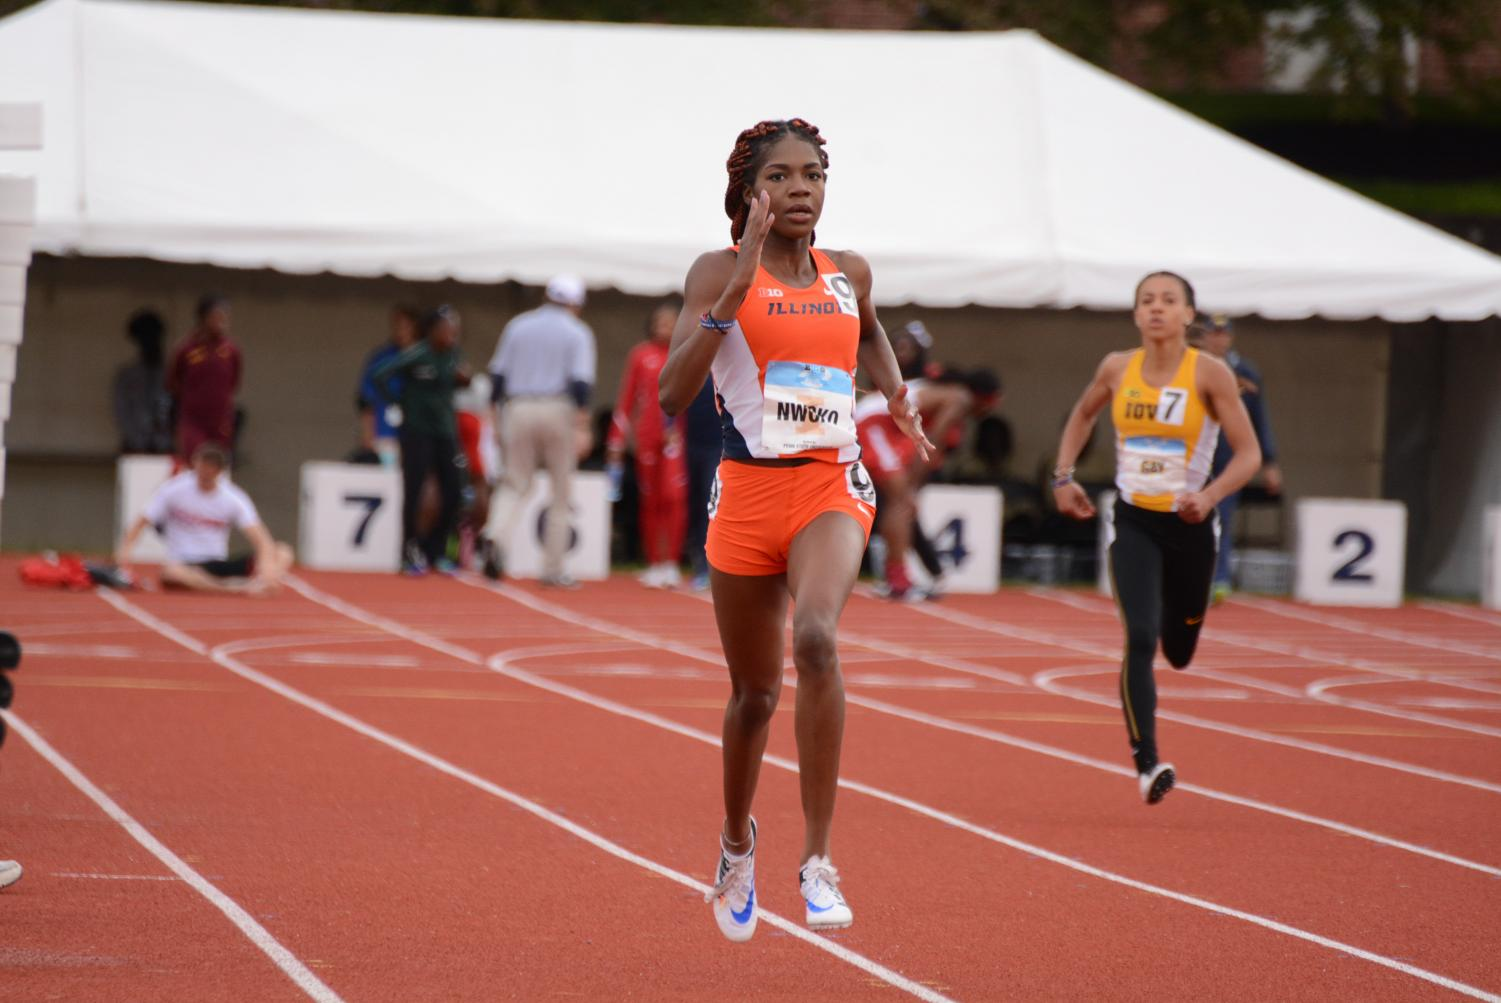 Junior Chisom Nwoko races for the Illini during their outdoor season. The team will now head indoors and begin to compete at Huff Hall.